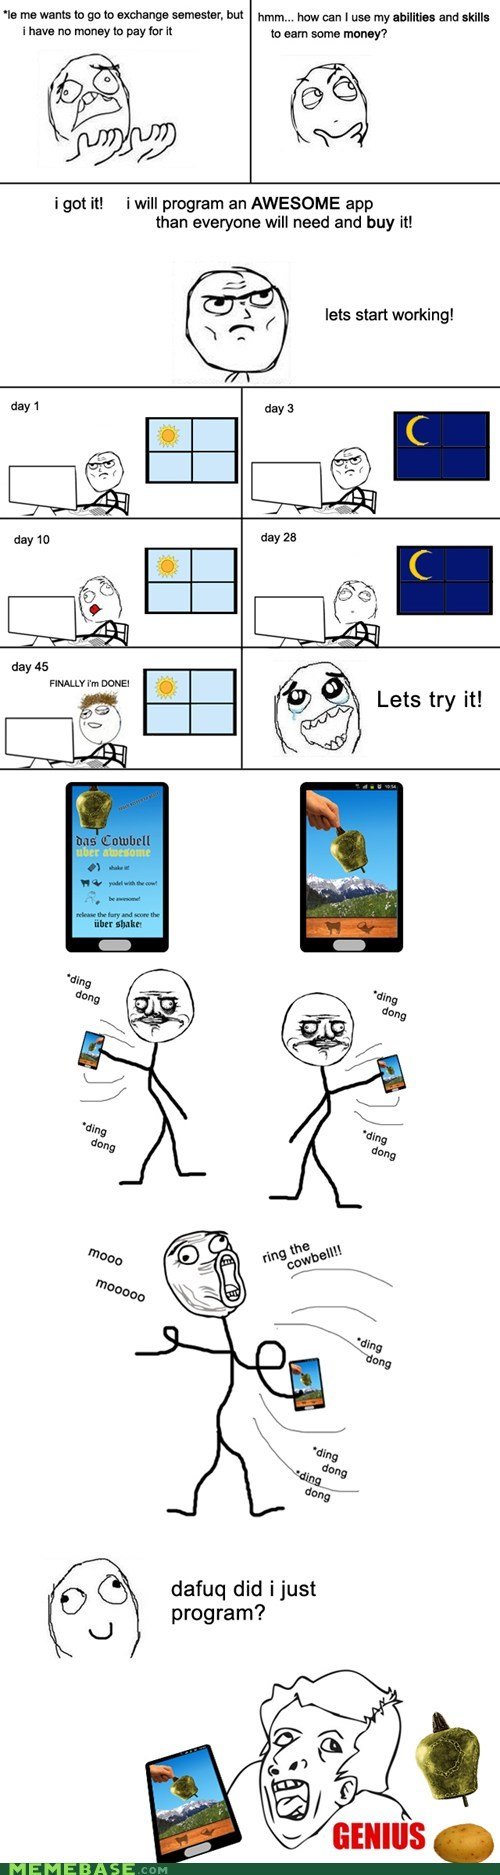 App,dance,fruit,genius,program,Rage Comics,skills